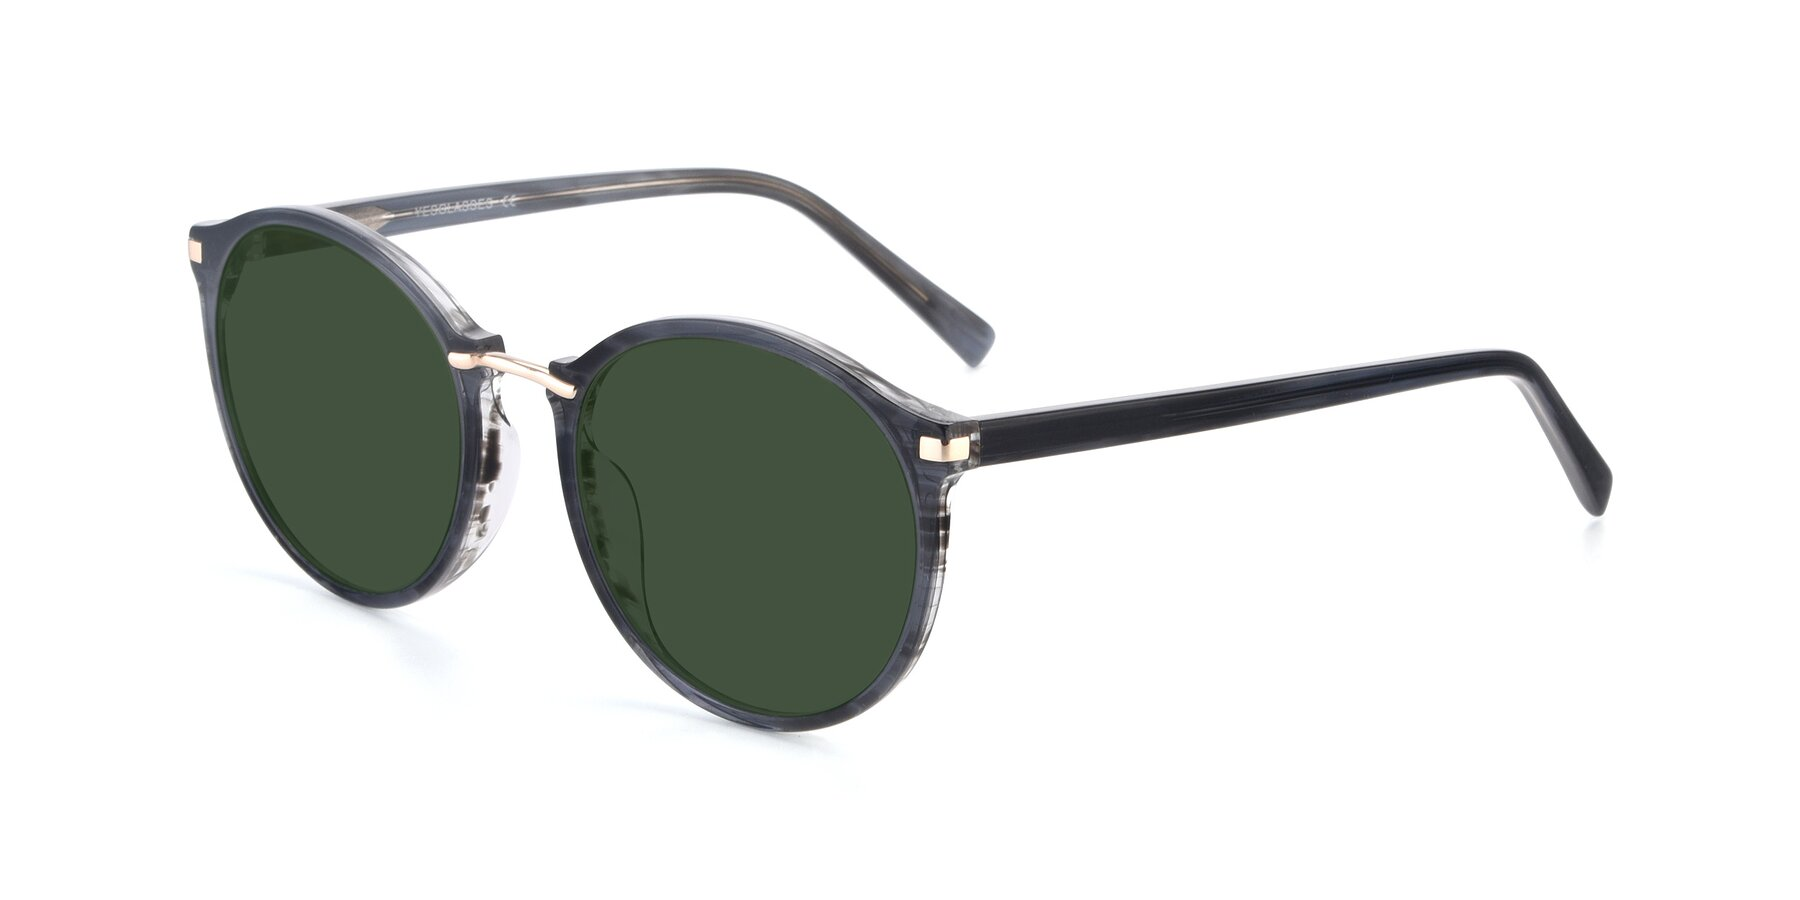 Angle of 17582 in Translucent Black with Green Tinted Lenses